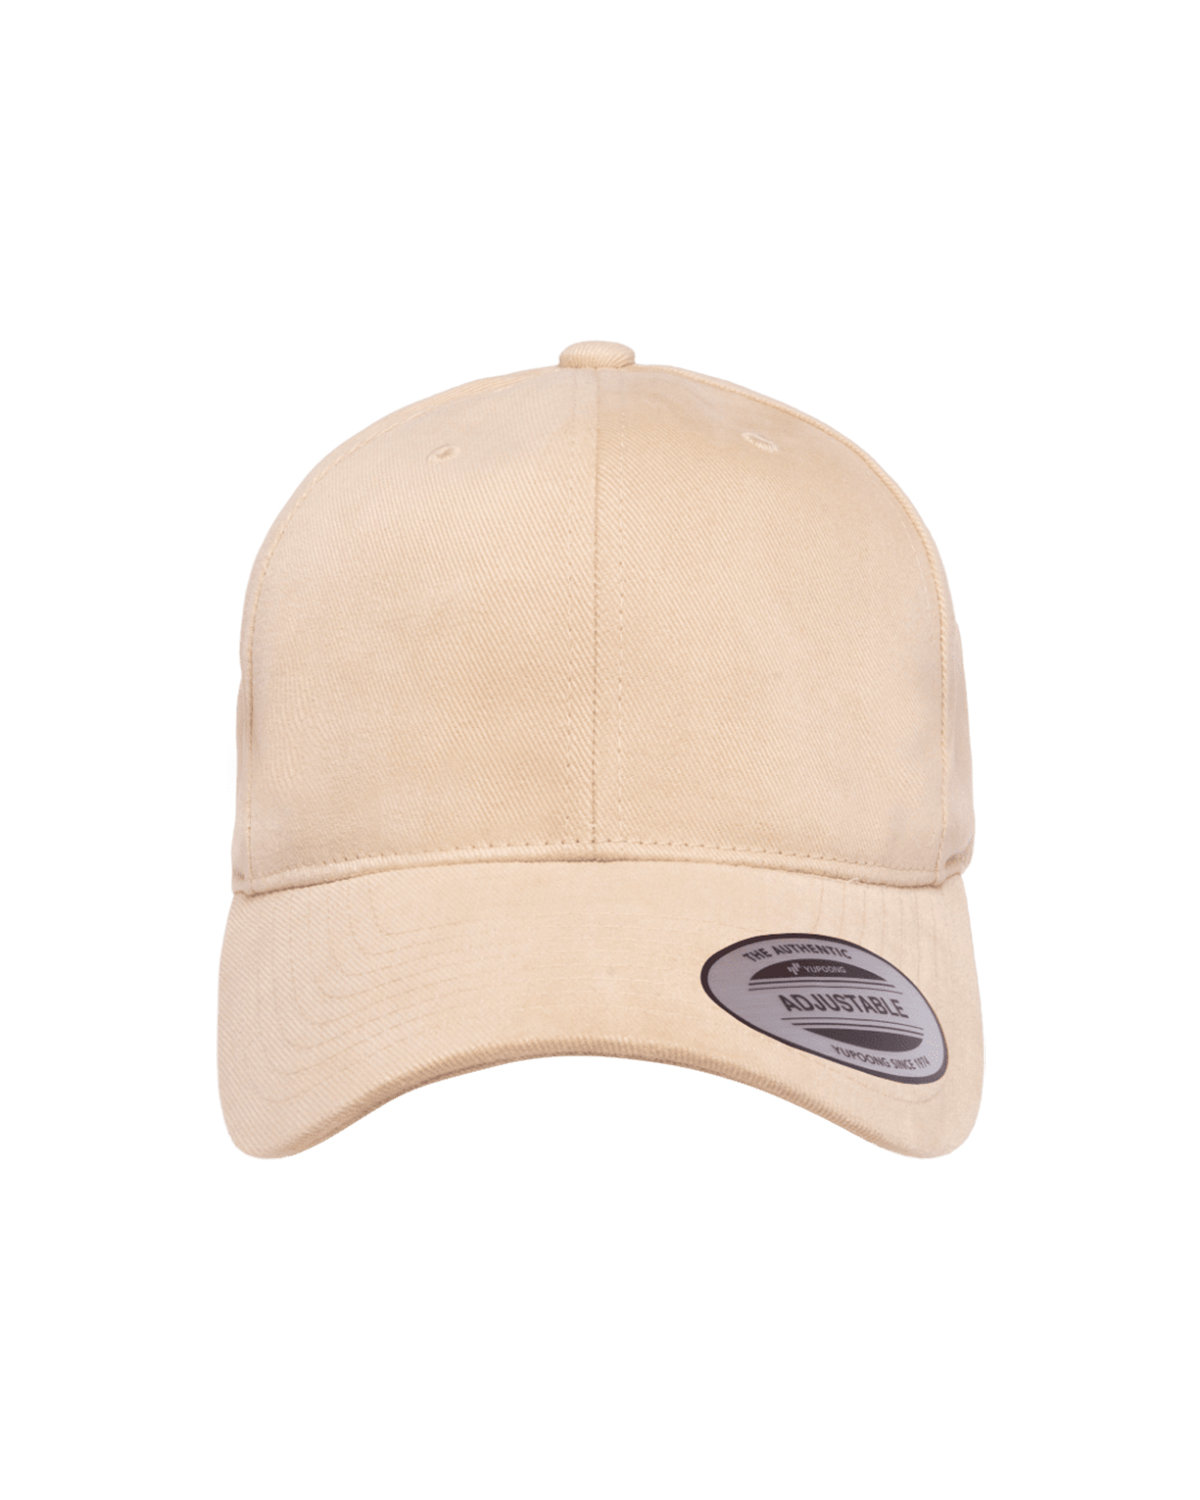 Yupoong Adult Brushed Cotton Twill Mid-Profile Cap PUTTY